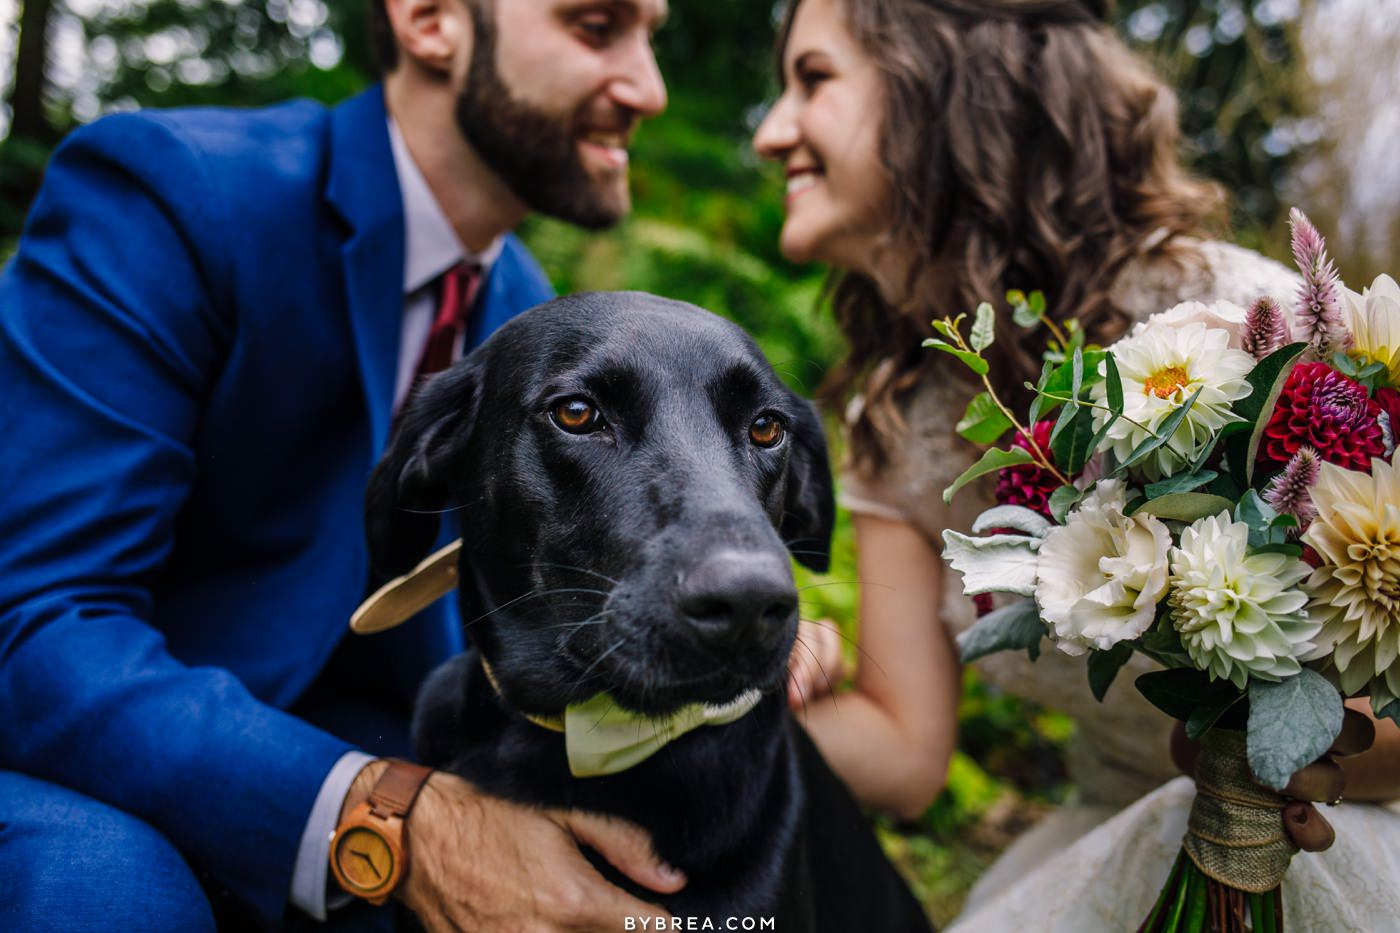 Bohdi the dog and his family looking fly on their wedding day